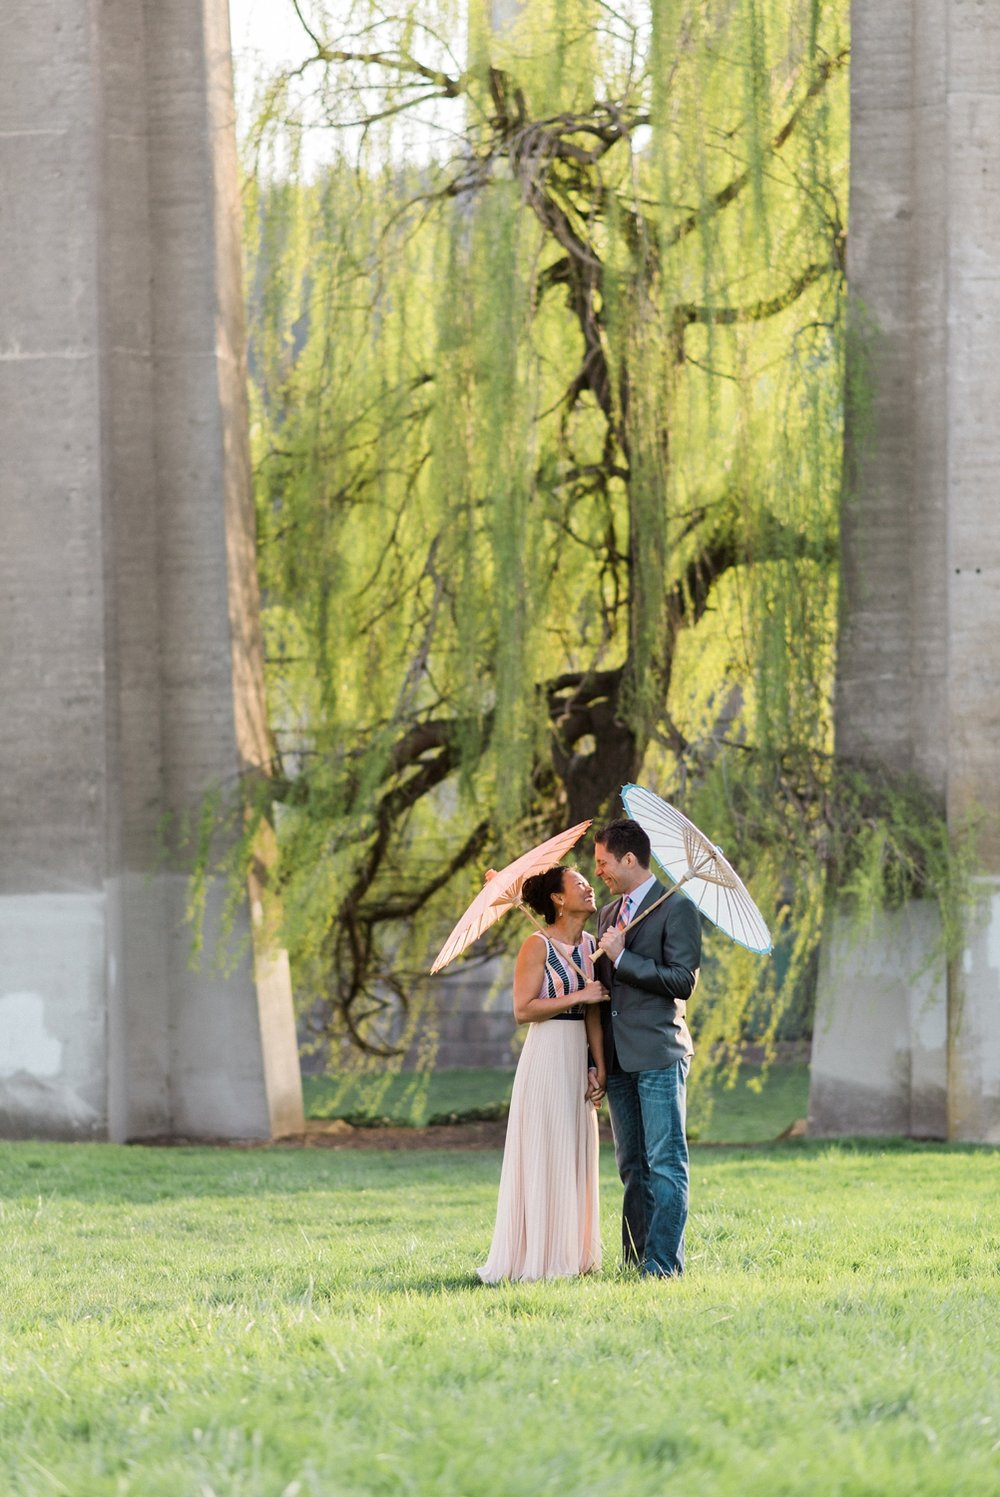 portland-waterfront-engagement-cherry-blossom-cathedral-park-sokhorn-jay-254_cr.jpg